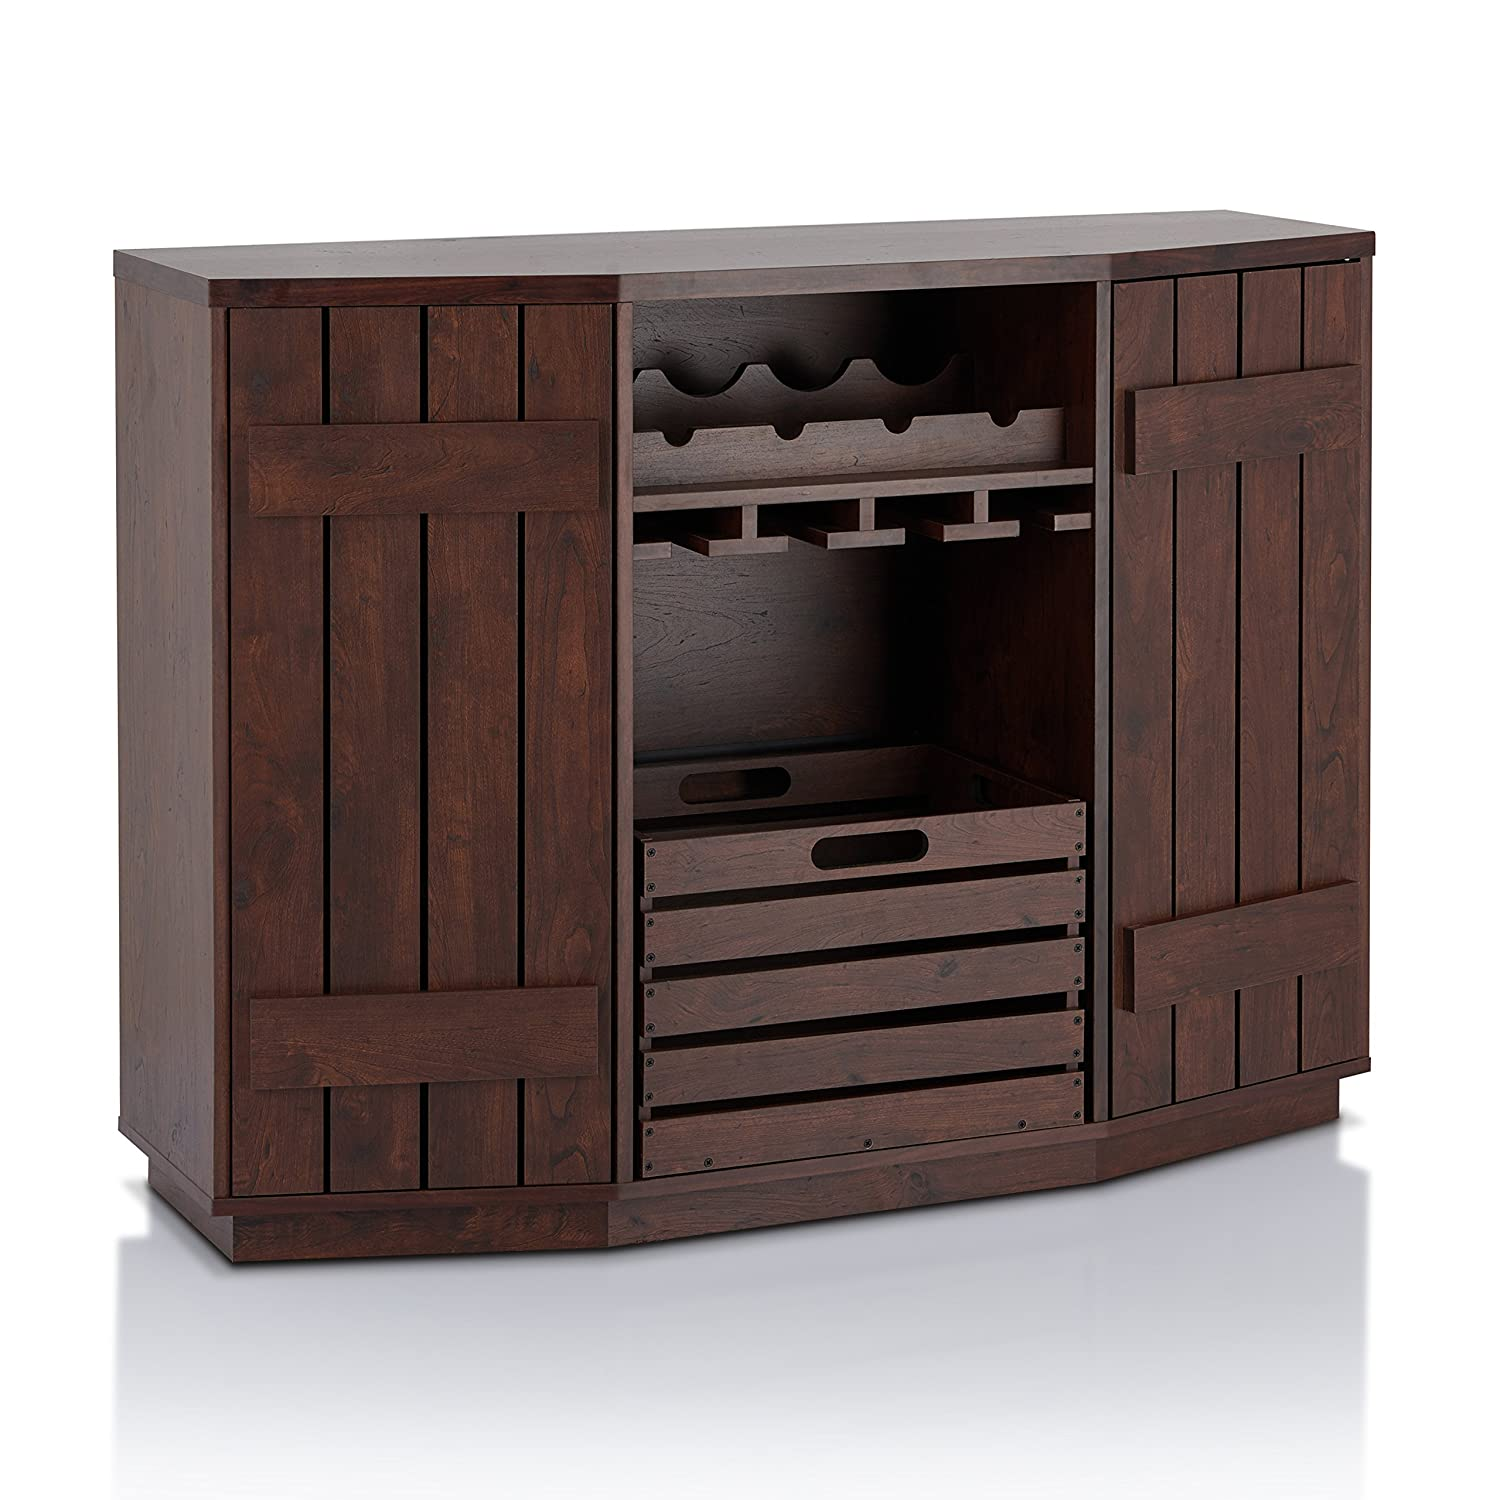 ioHOMES Lopez Plank Style Server with Removable Crate - Vintage Walnut